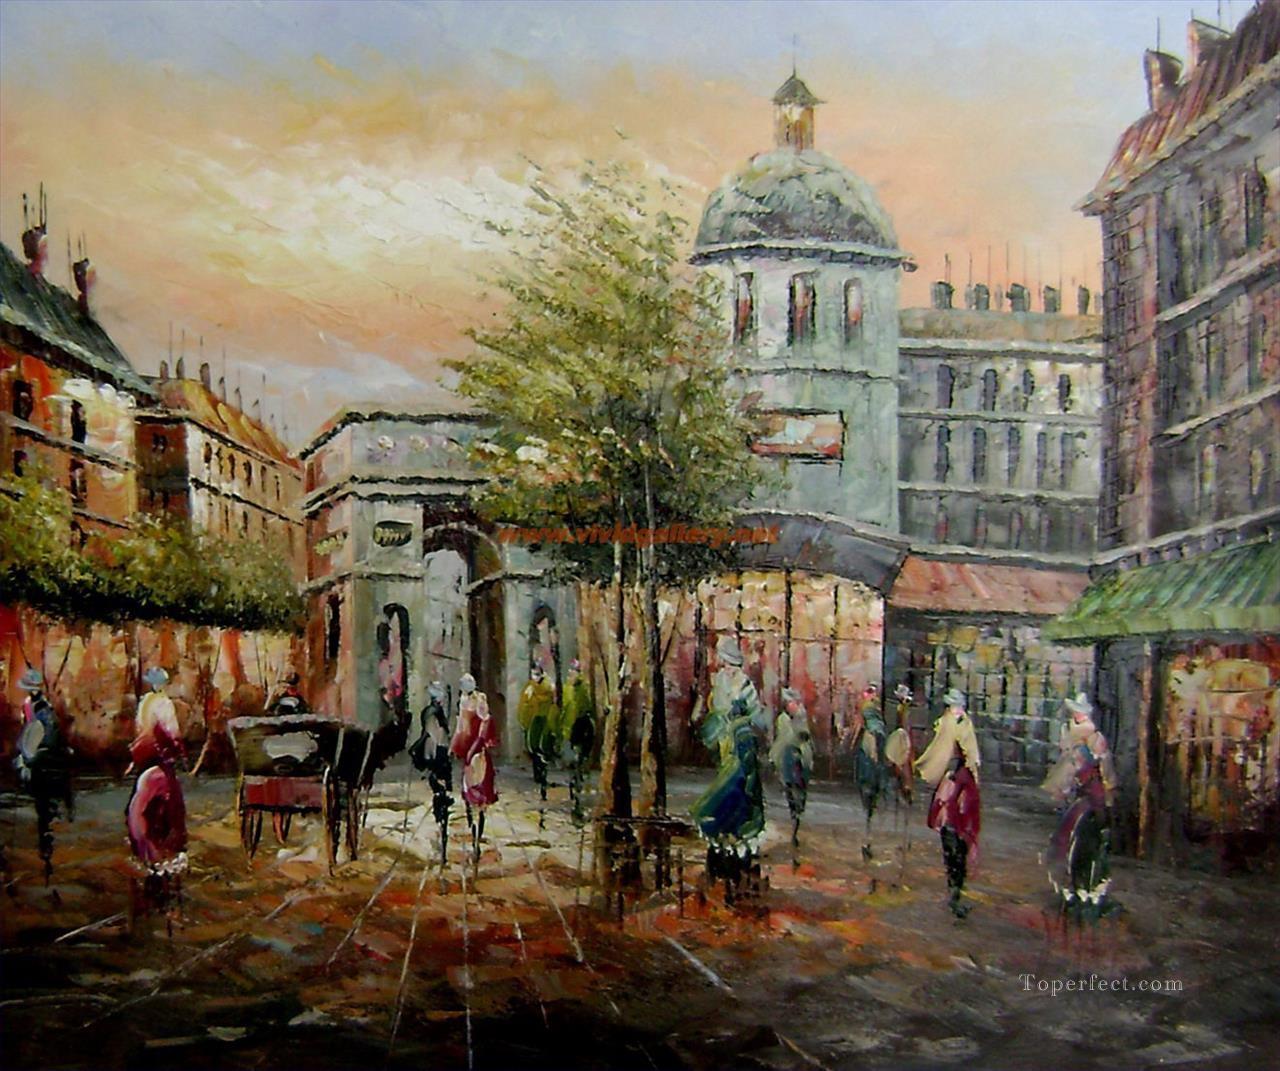 Impressionism Paris: St098B Impressionism Paris Scenes Painting In Oil For Sale